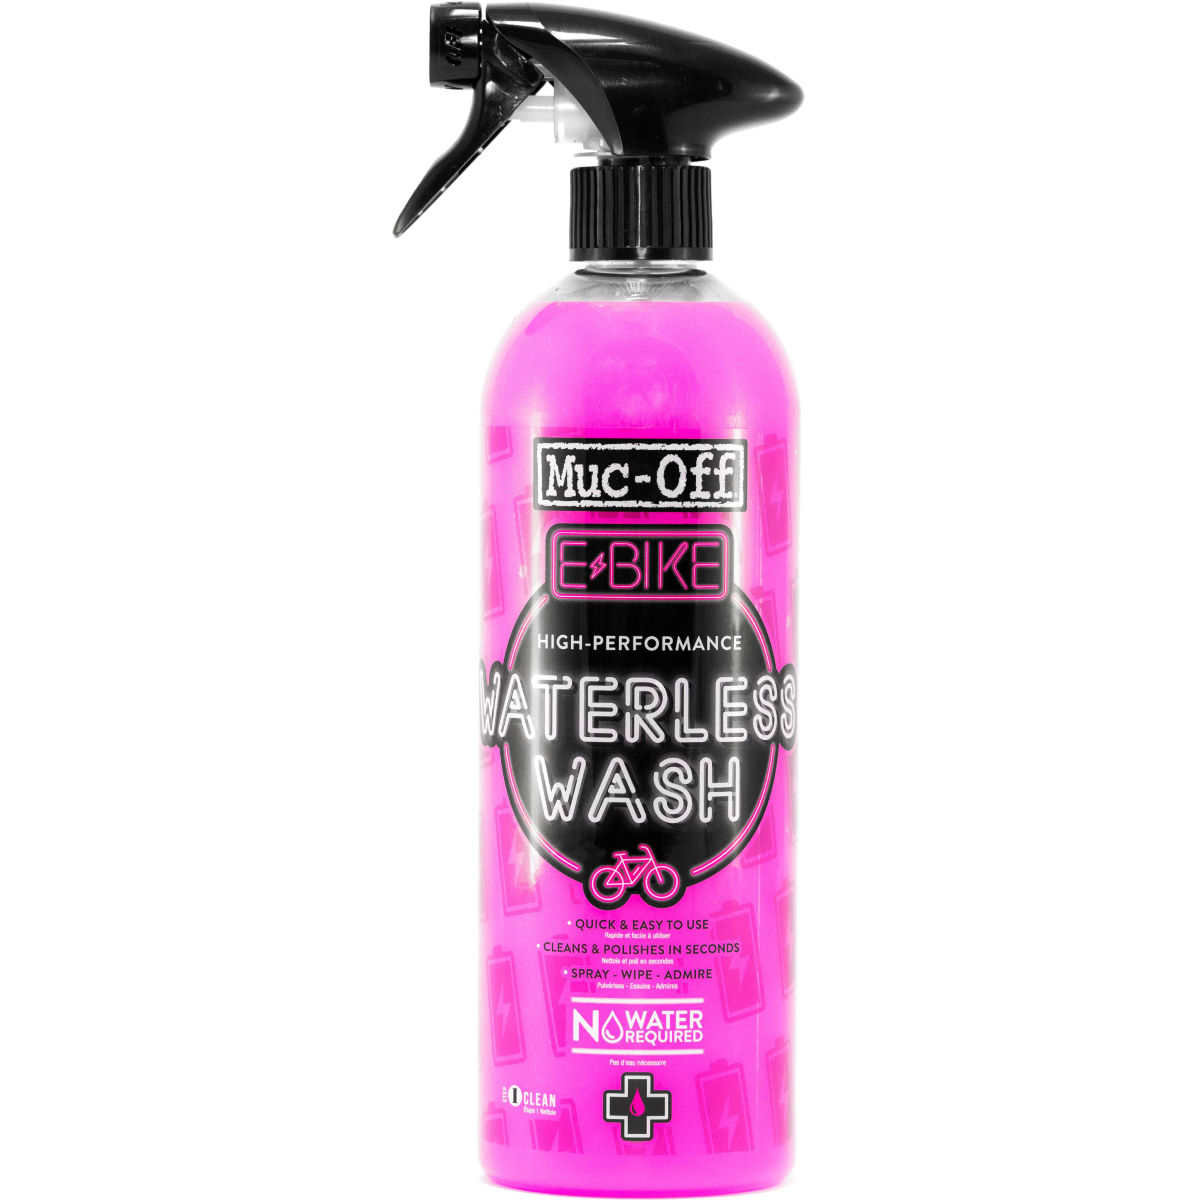 Muc-Off Muc-Off eBike Dry Wash   Cleaning Products